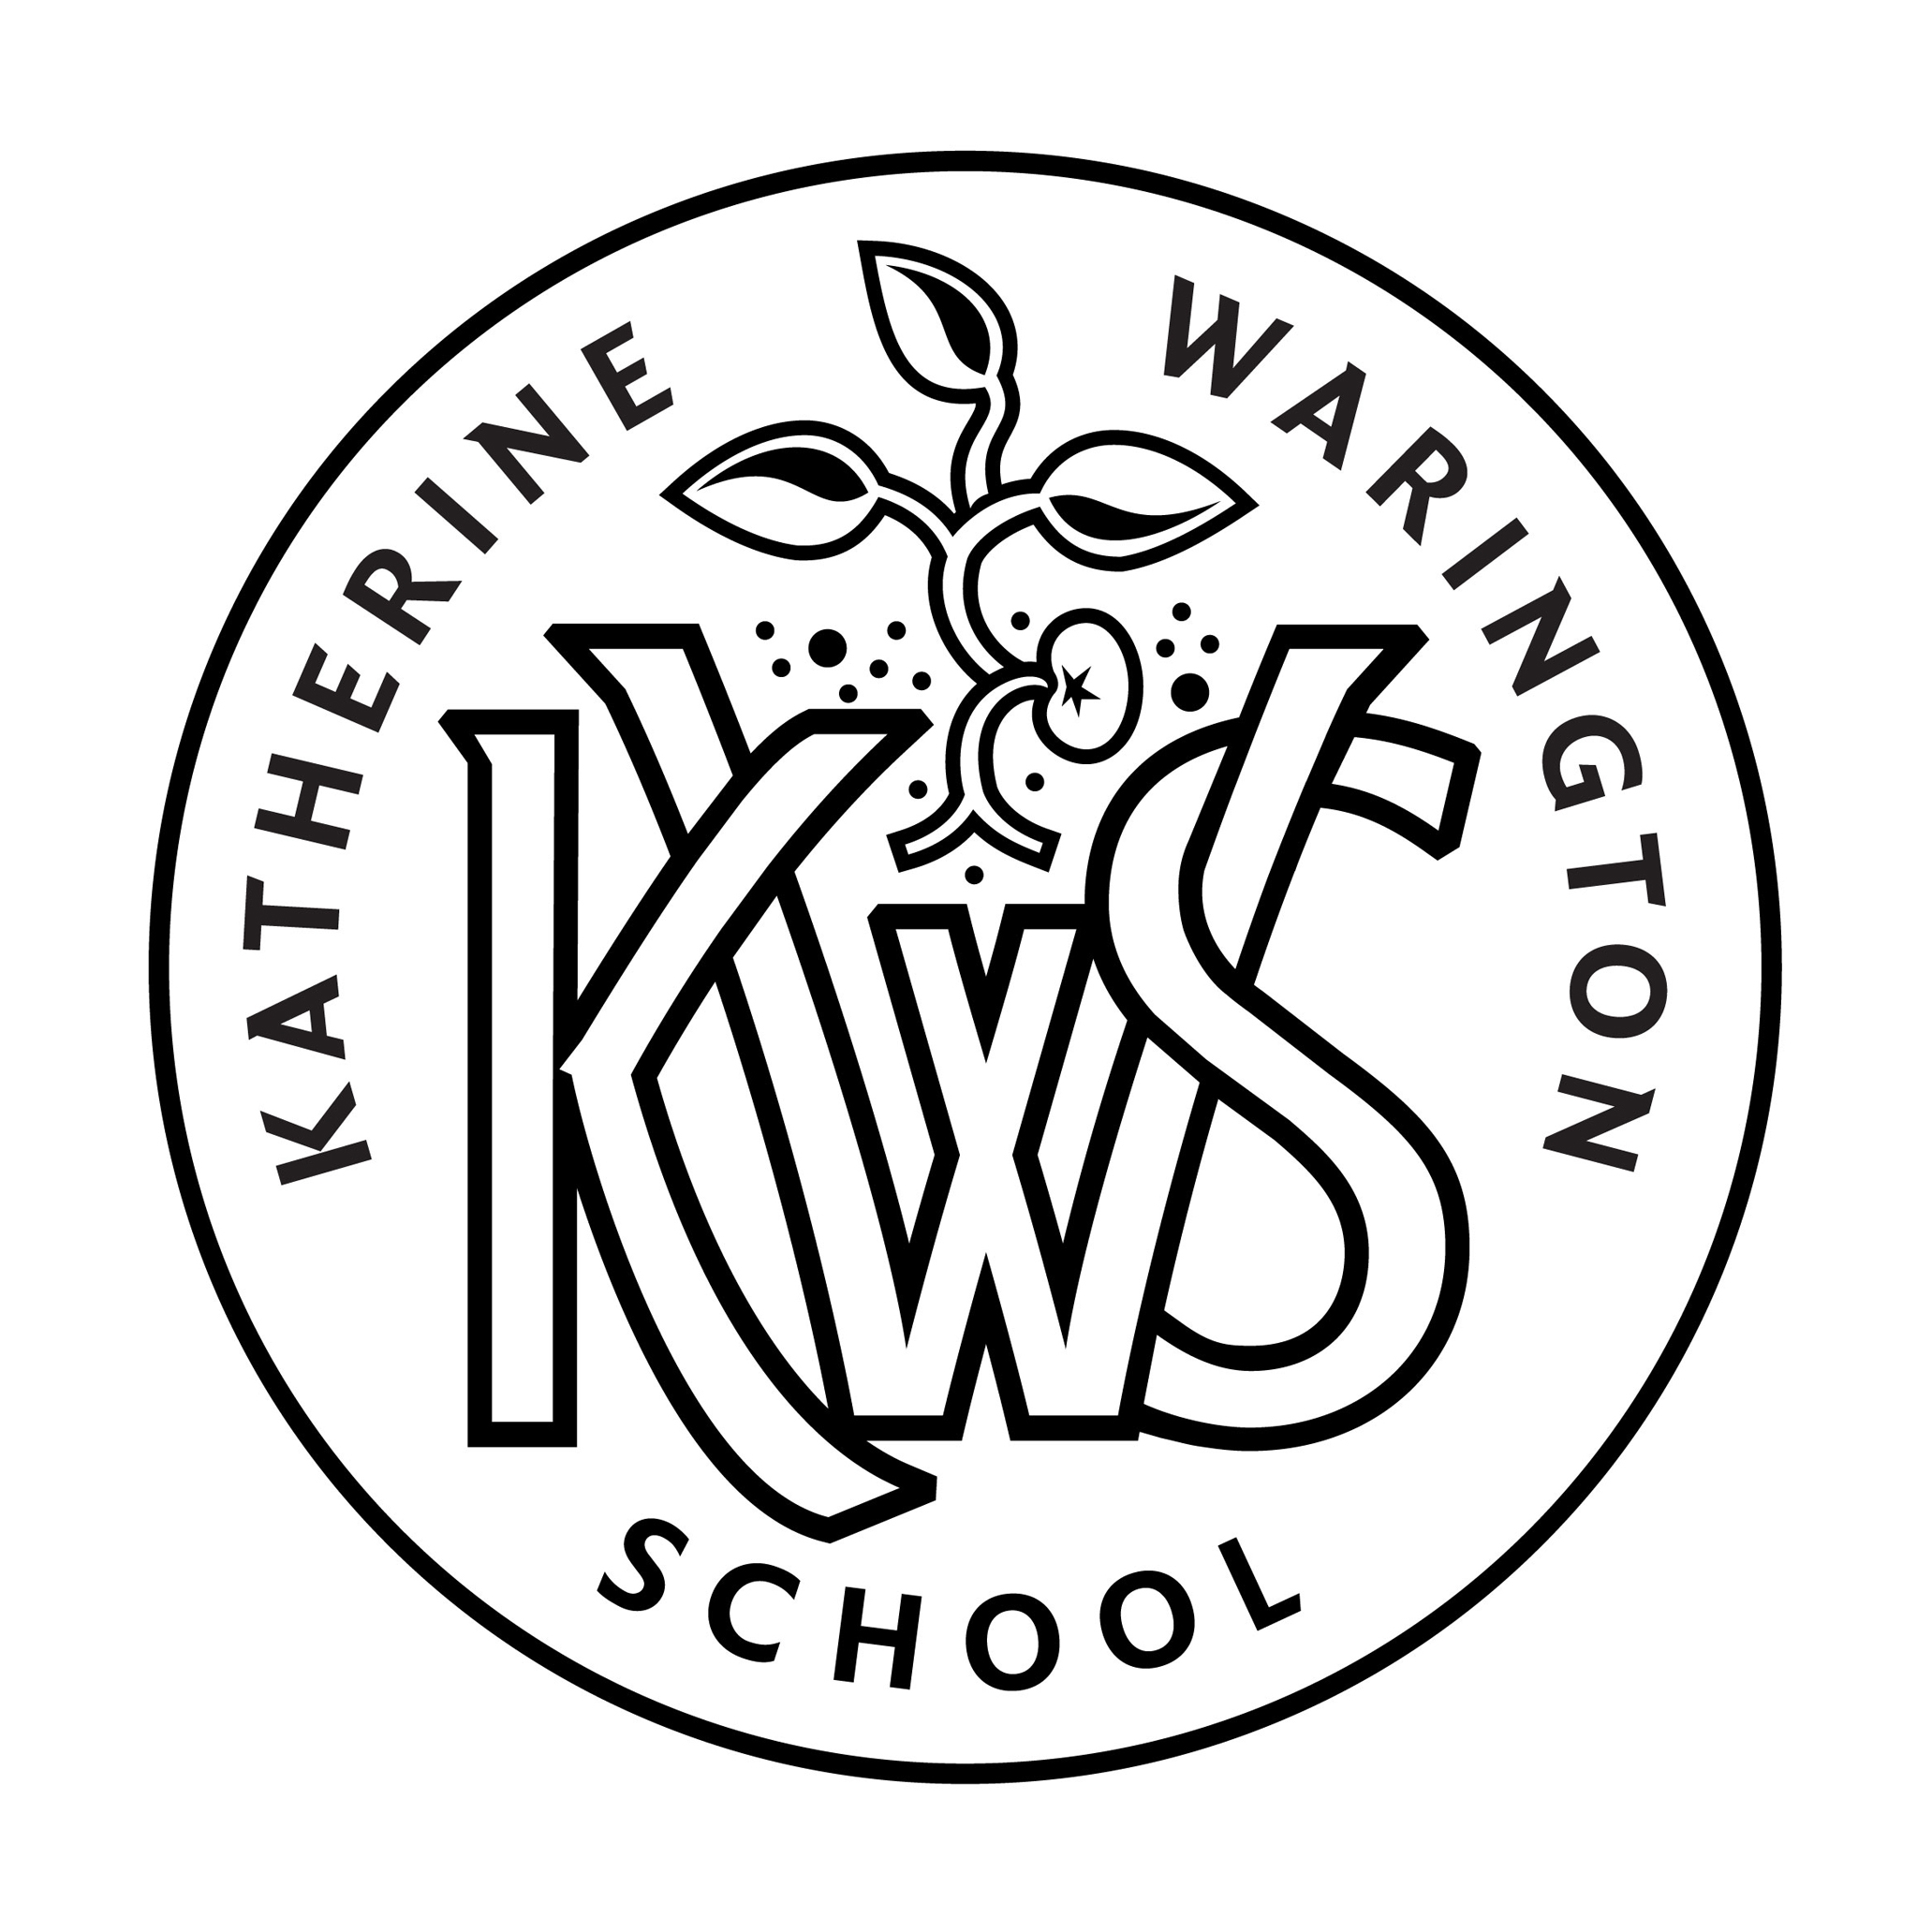 Katherine Warington School badge